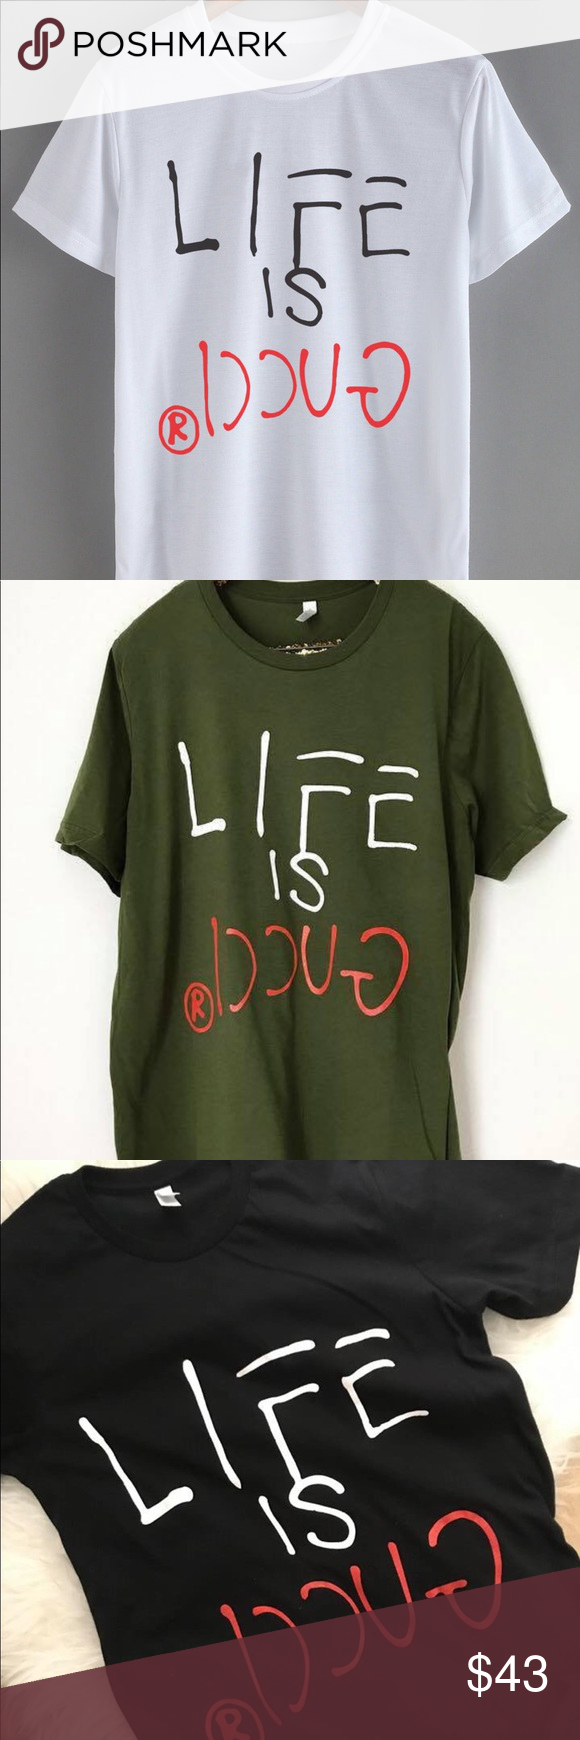 fe81f1096a7 Life Is Gucci Unisex T-Shirt Style  Men s T-shirt Size  S-2XL Color  White  Black Olive Green Pattern  Printing Sleeve  short sleeve Collar type  Round  Neck ...